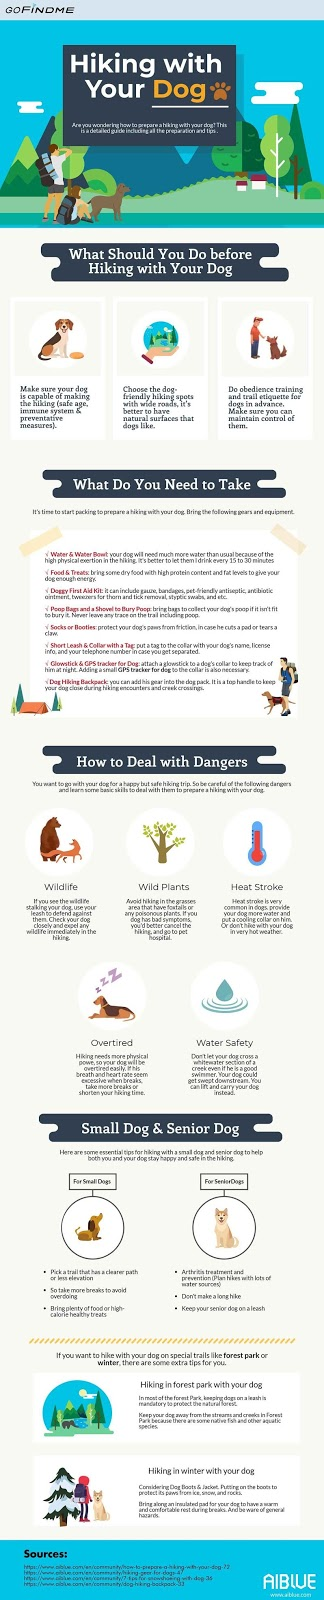 Practical Tips for Hiking with Your Dog